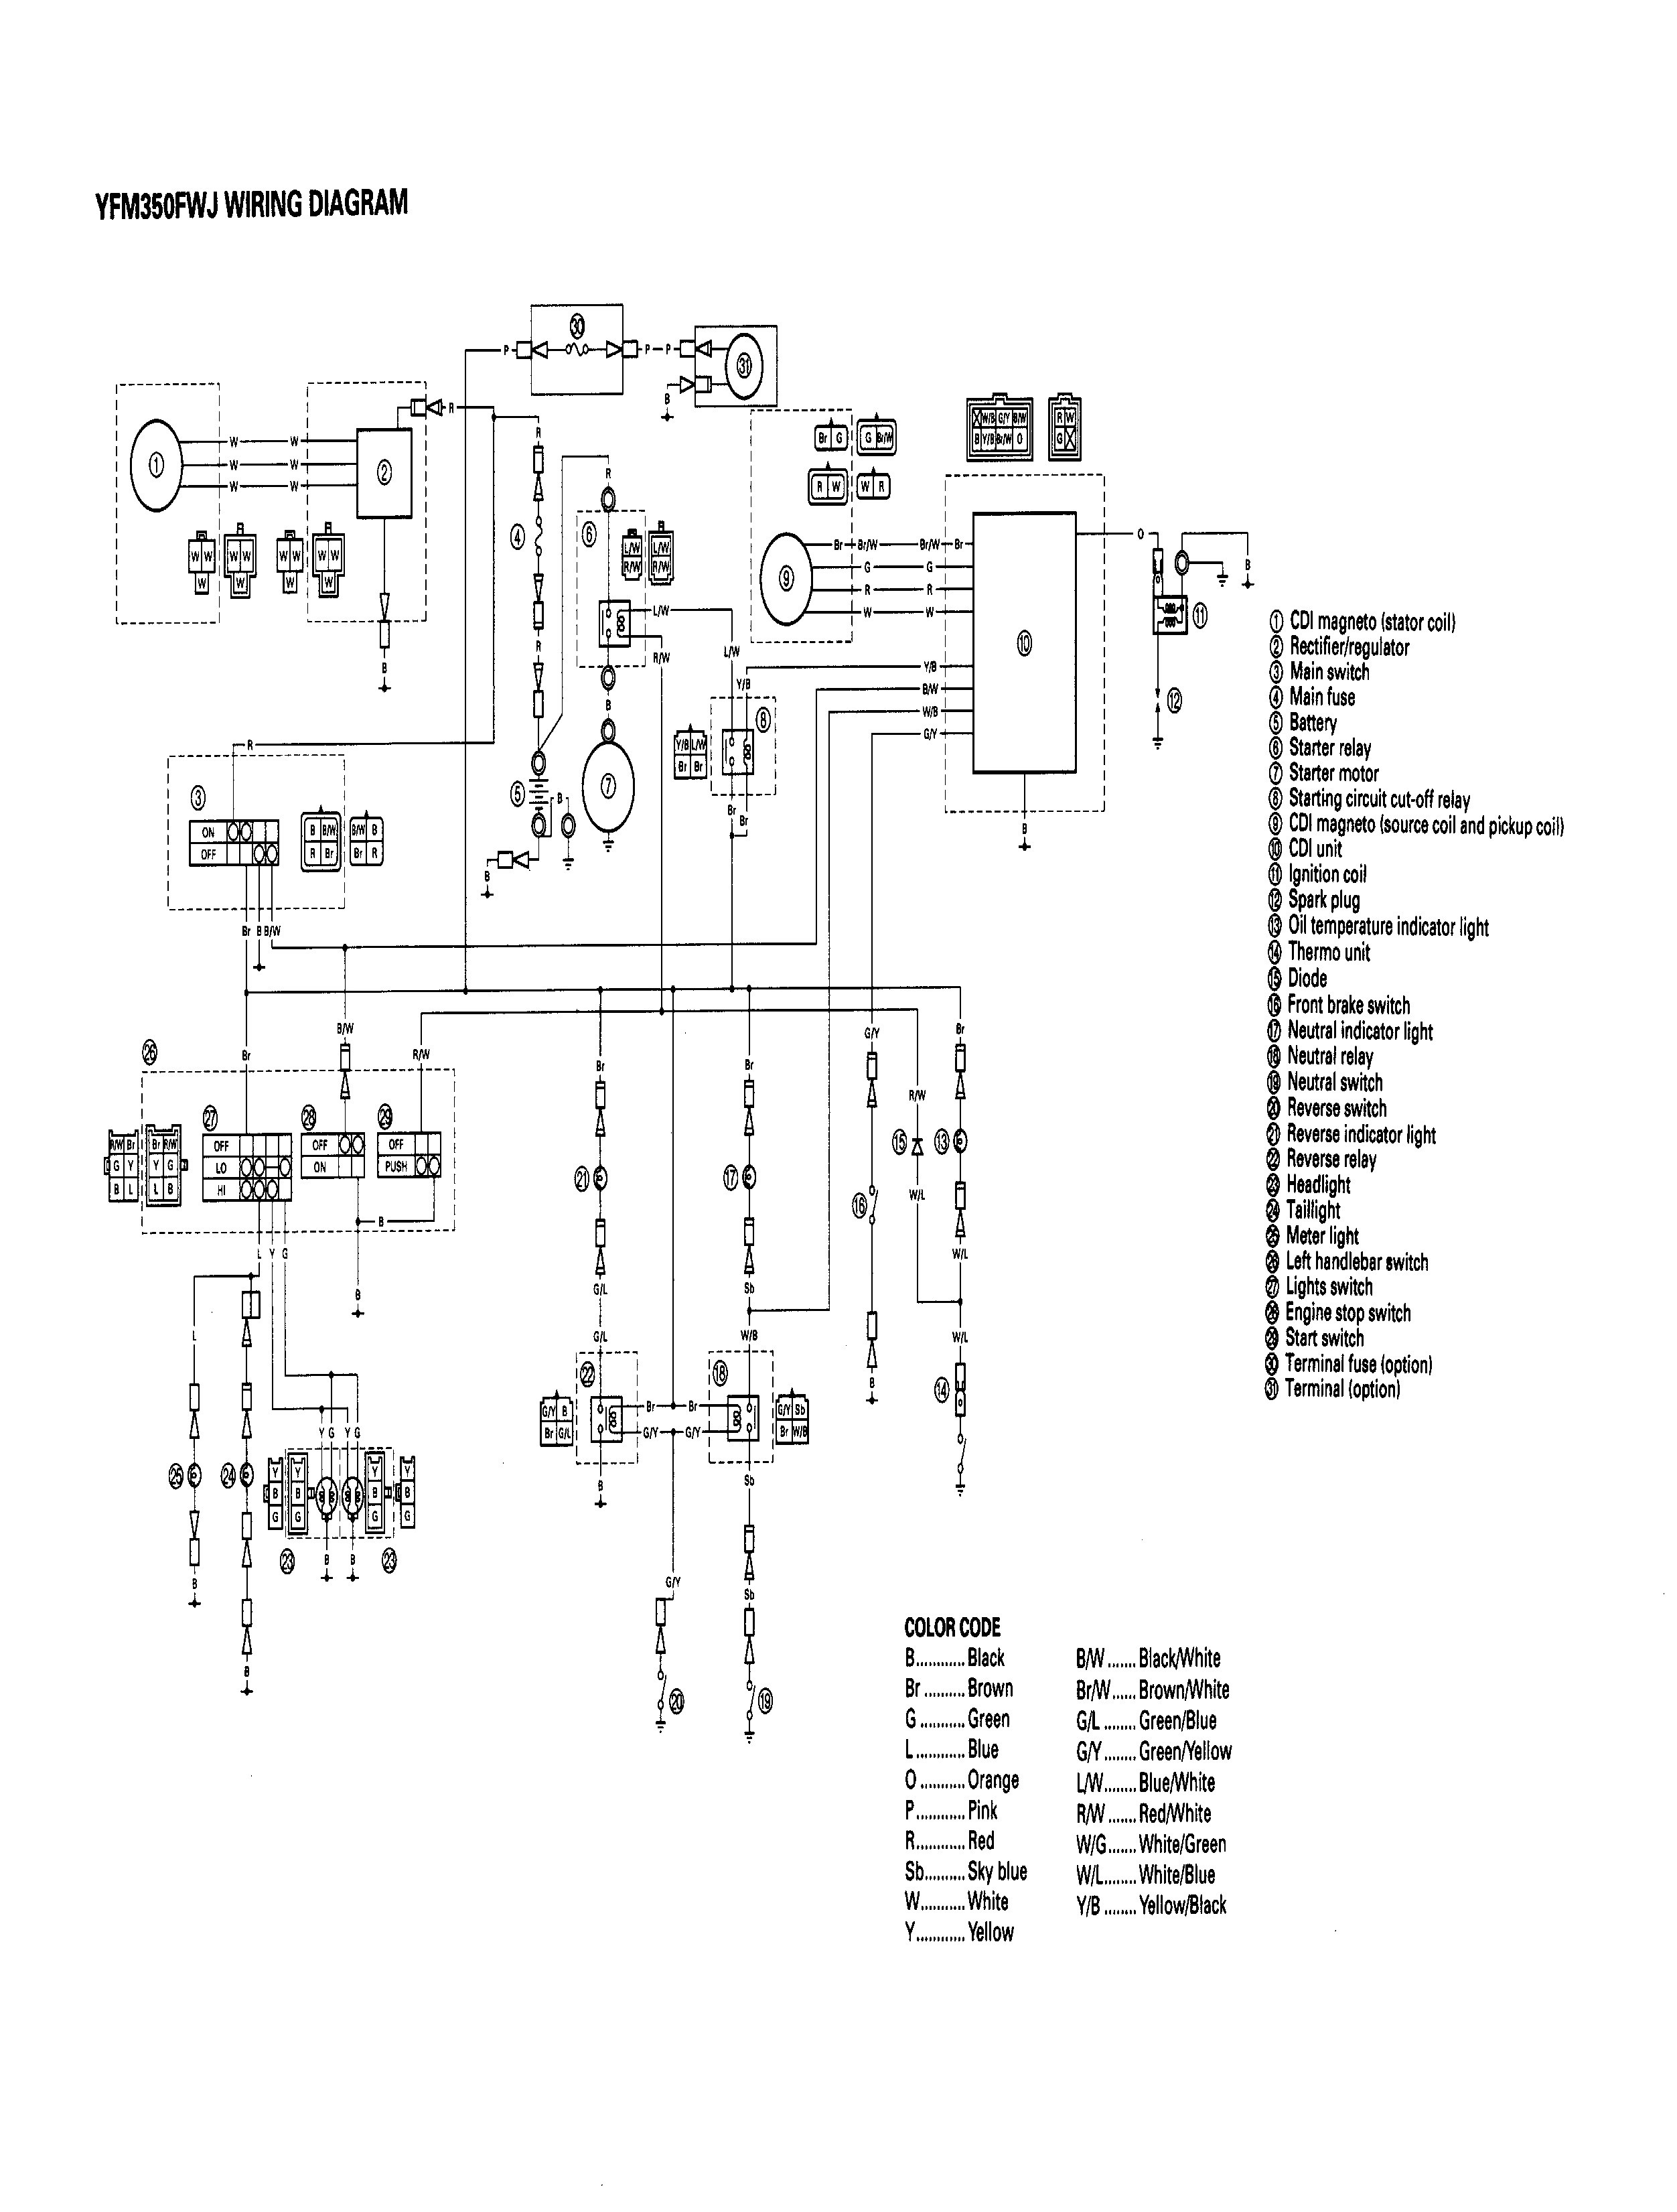 Big Bear Wiring Diagram | Wiring Diagram Yamaha Cdi Wiring Diagram on